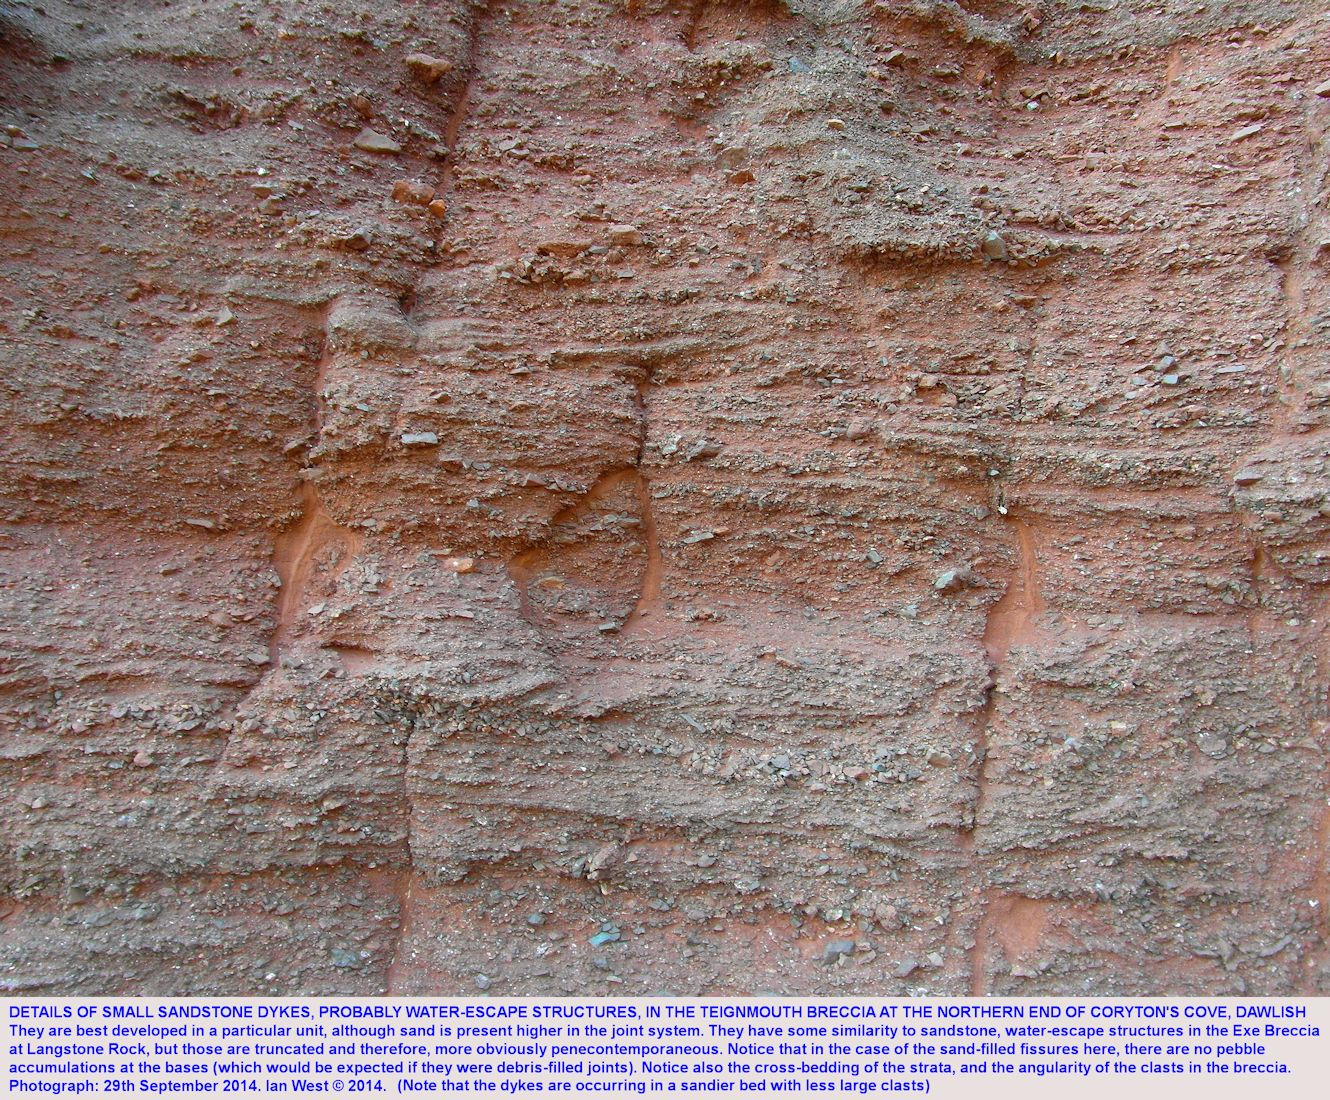 Details of sand fissures, probably water-escape structures, in the Teignmouth Breccia, Permian, north side of Coryton's Cove, Dawlish, Devon, 2014